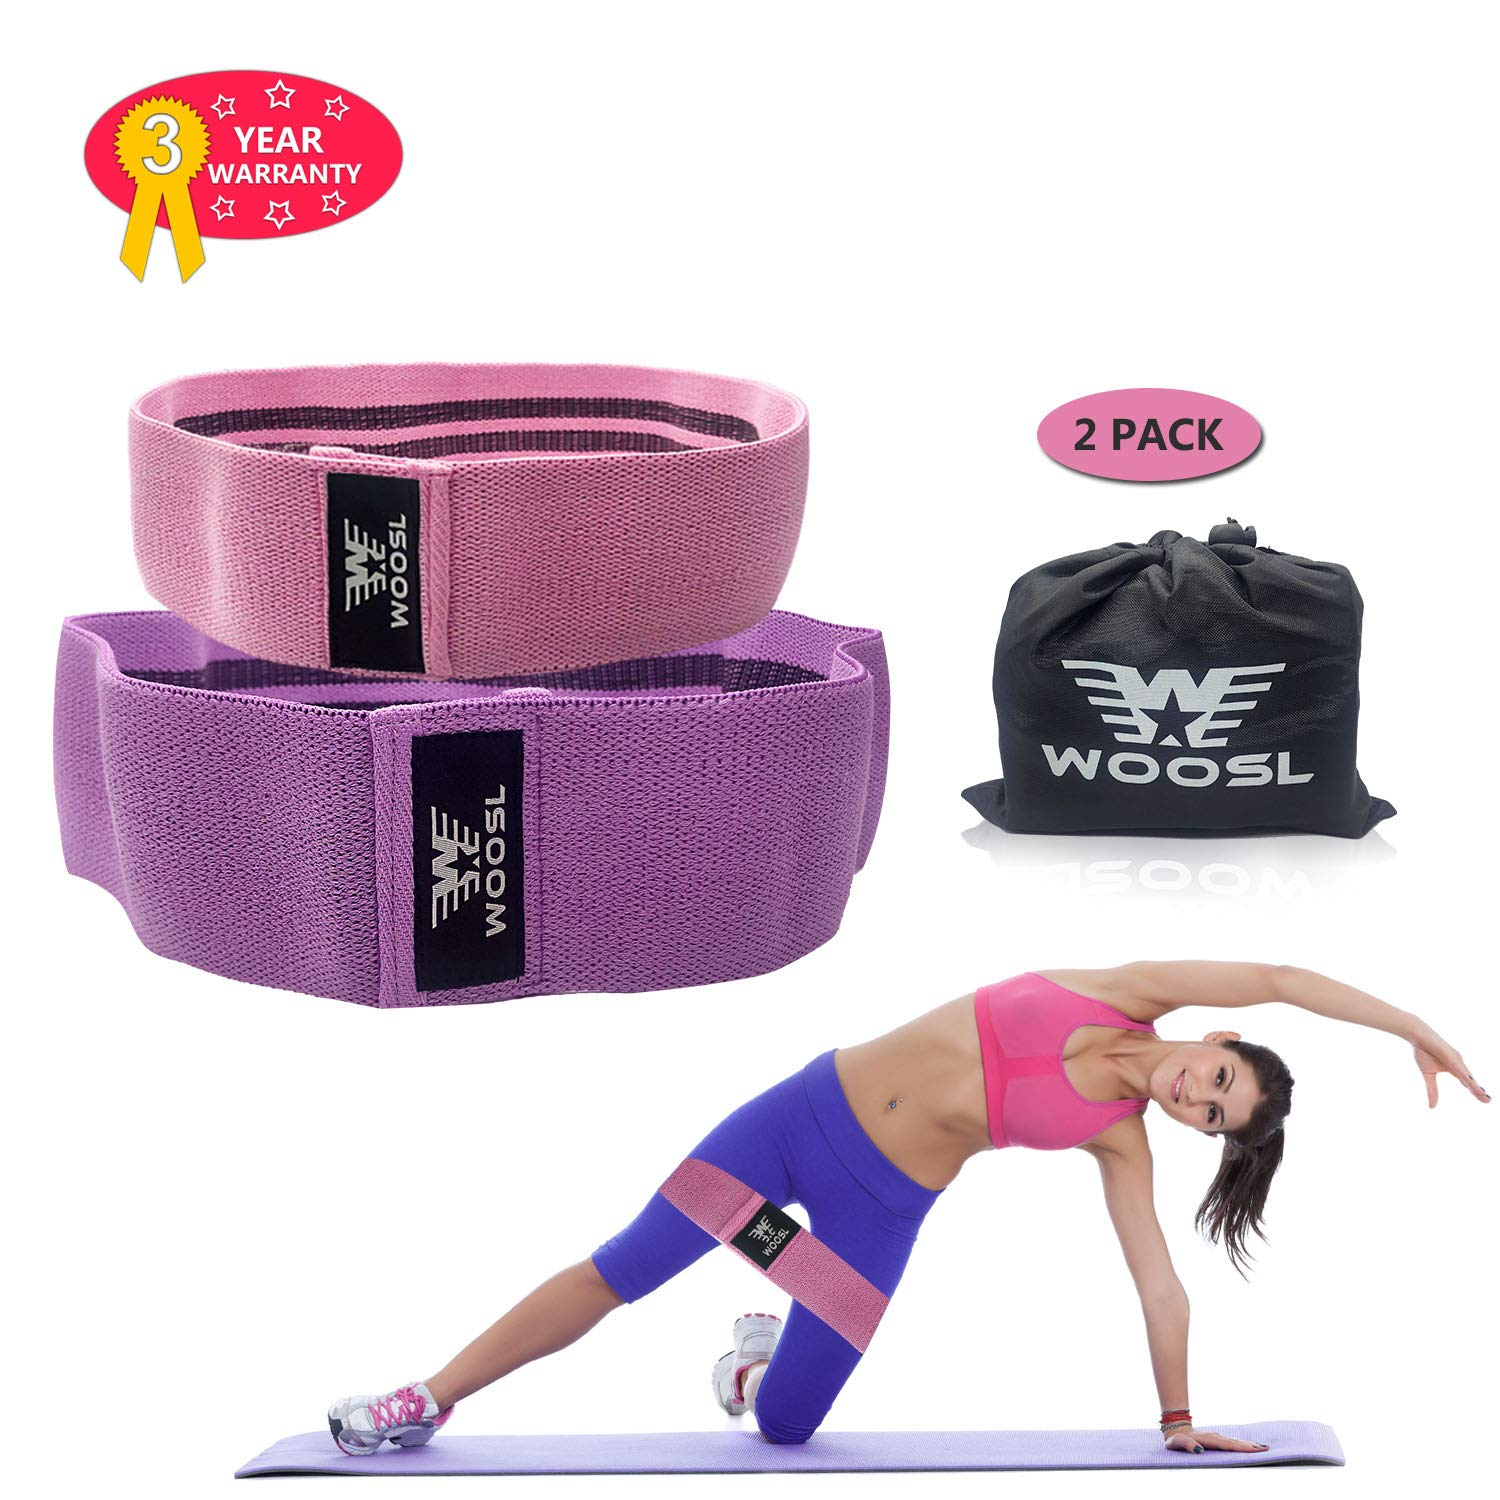 WOOSL Resistance Exercise Bands for Legs and Butt, Hip Bands Booty Bands Wide Workout Bands Resistance Loop Bands Anti Slip Circle Fitness Band Elastic Sports Bands by WOOSL (Image #1)